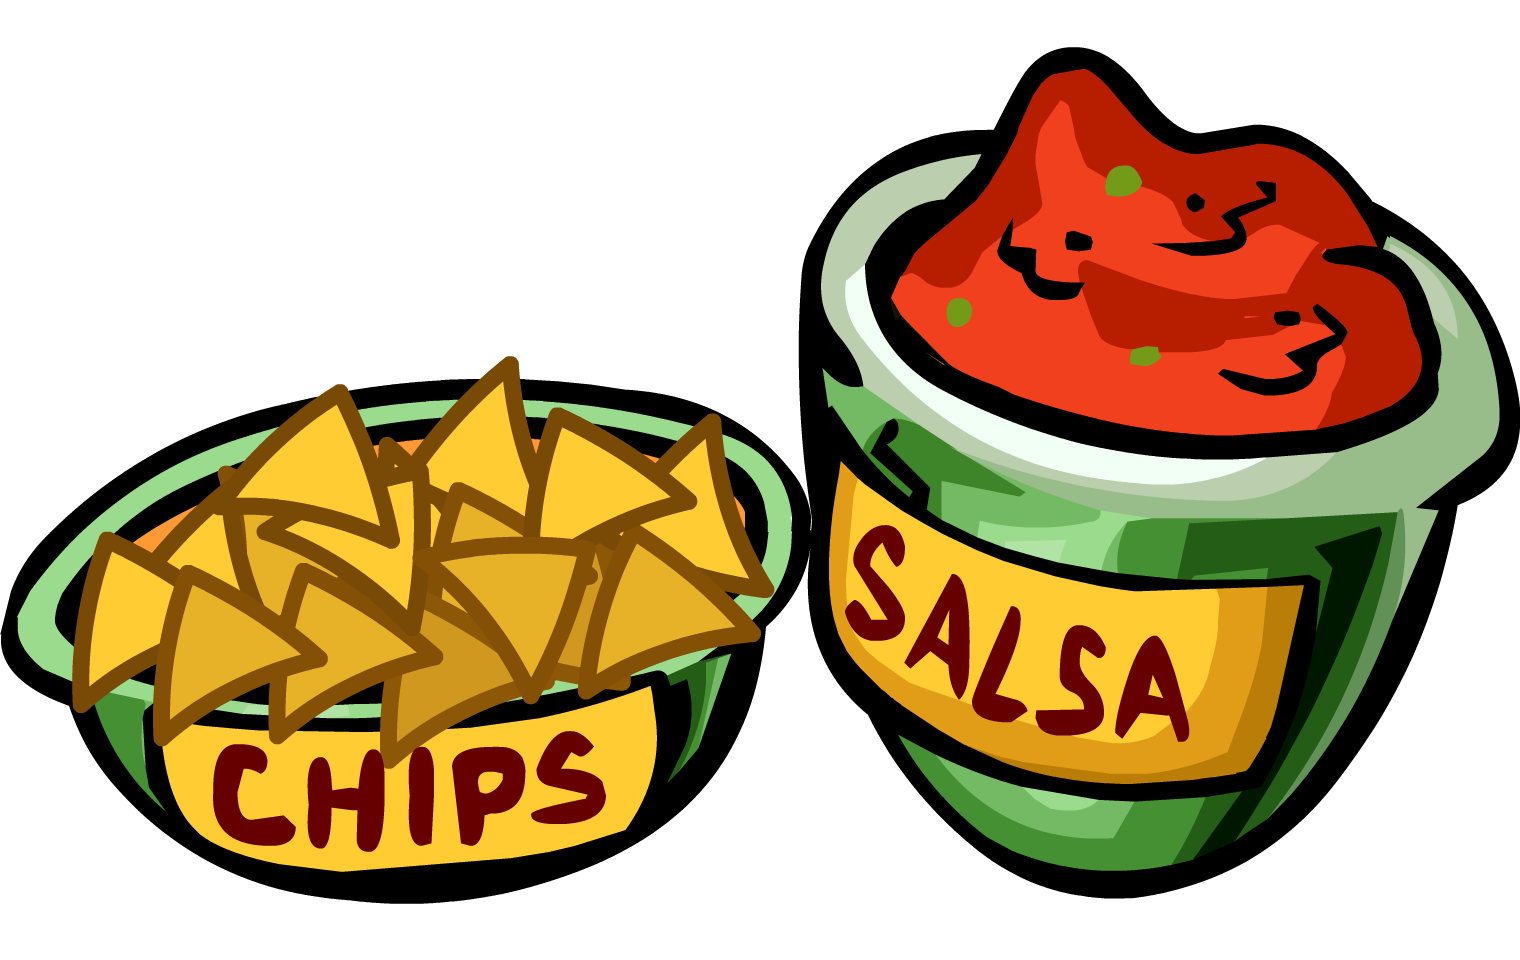 Chips cartoon png. Image salsa and club